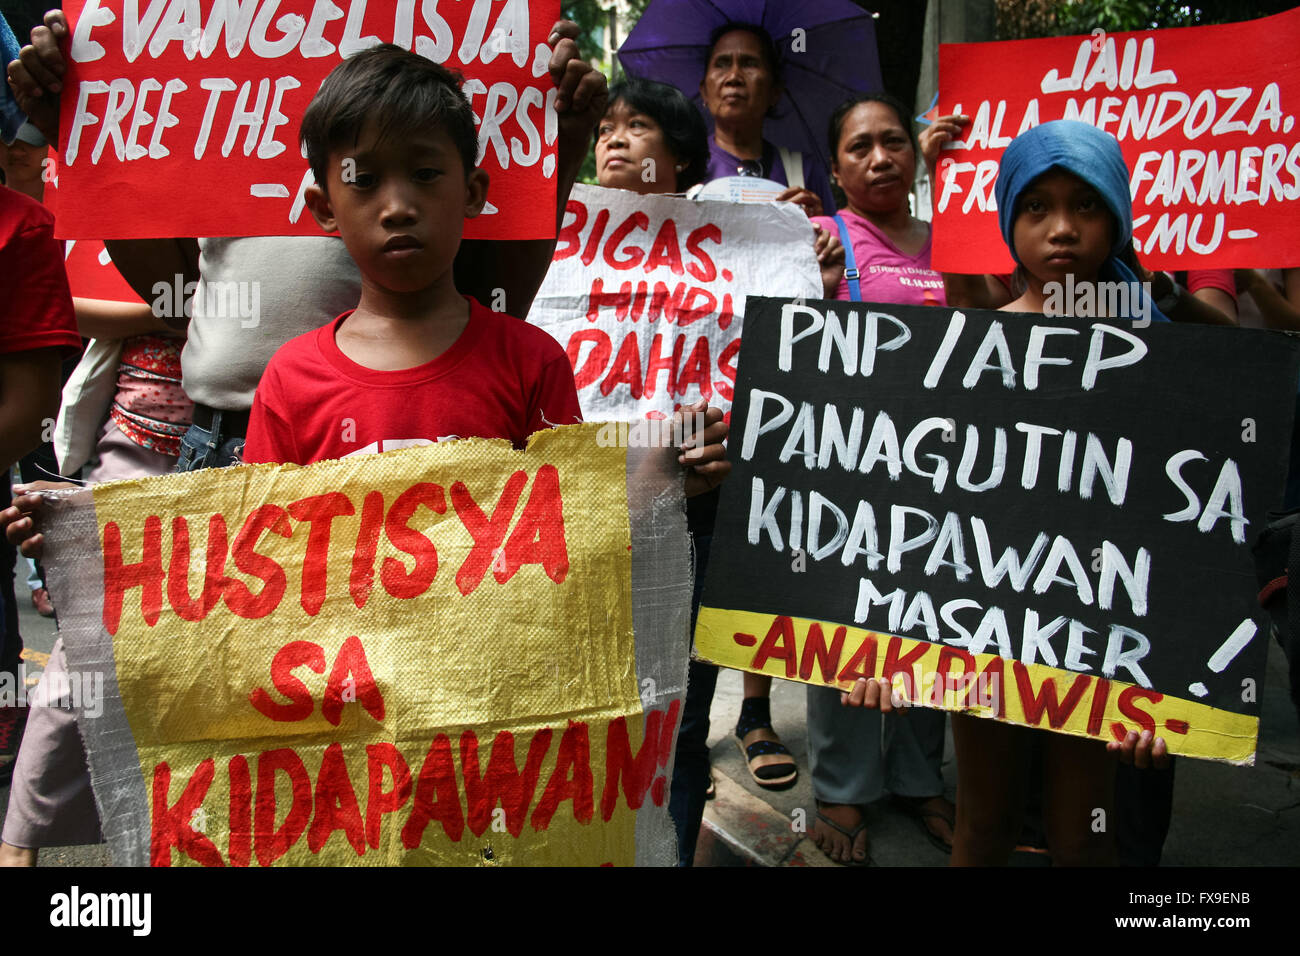 Philippines. 13th Apr, 2016. Young kids join the protest in front of the Department of Justice in Manila. Protesters Stock Photo